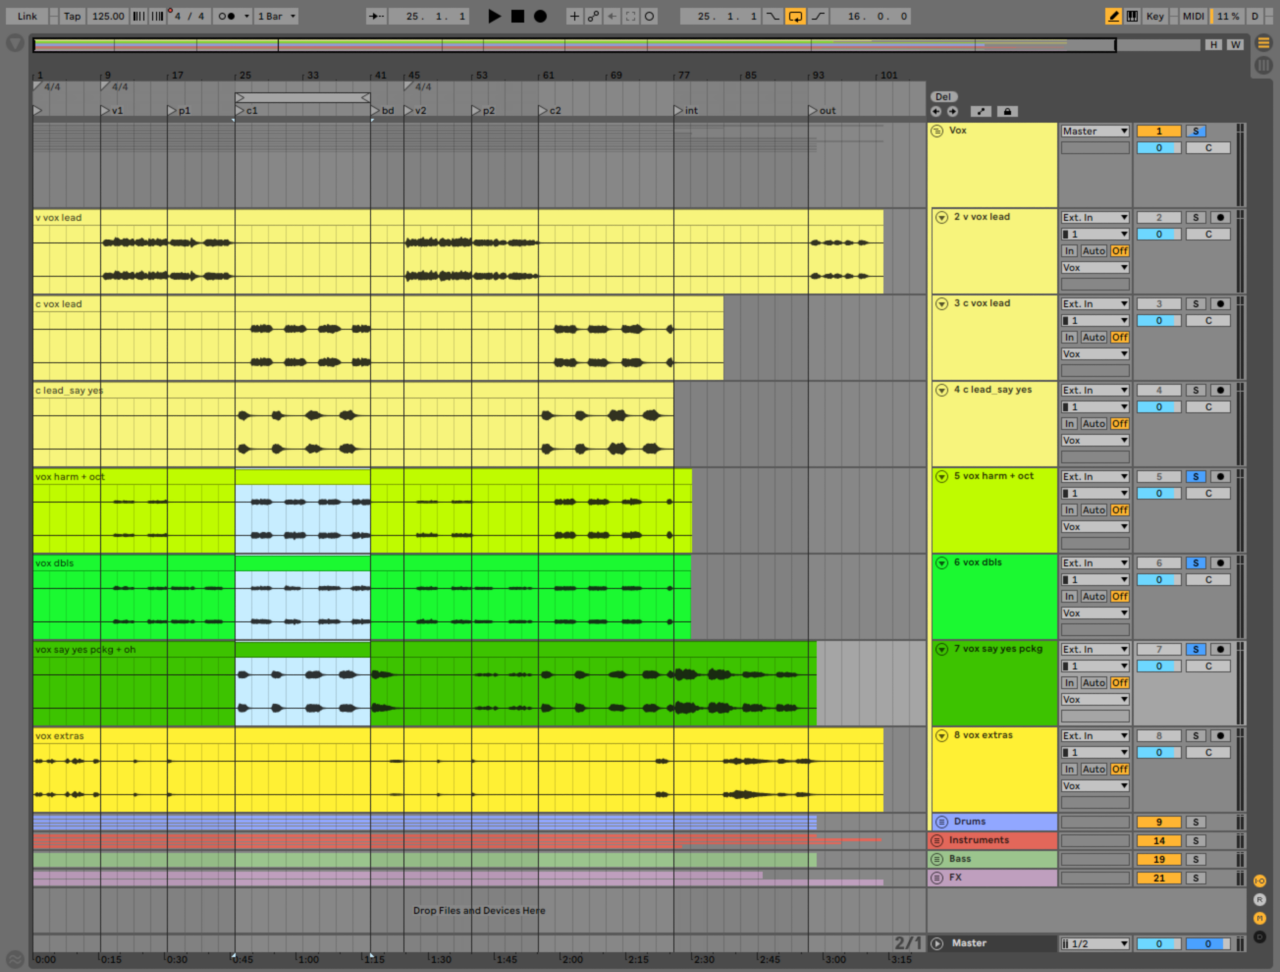 """Say Yes"" vocal tracks, with the backing vocals from the first chorus highlighted in blue."